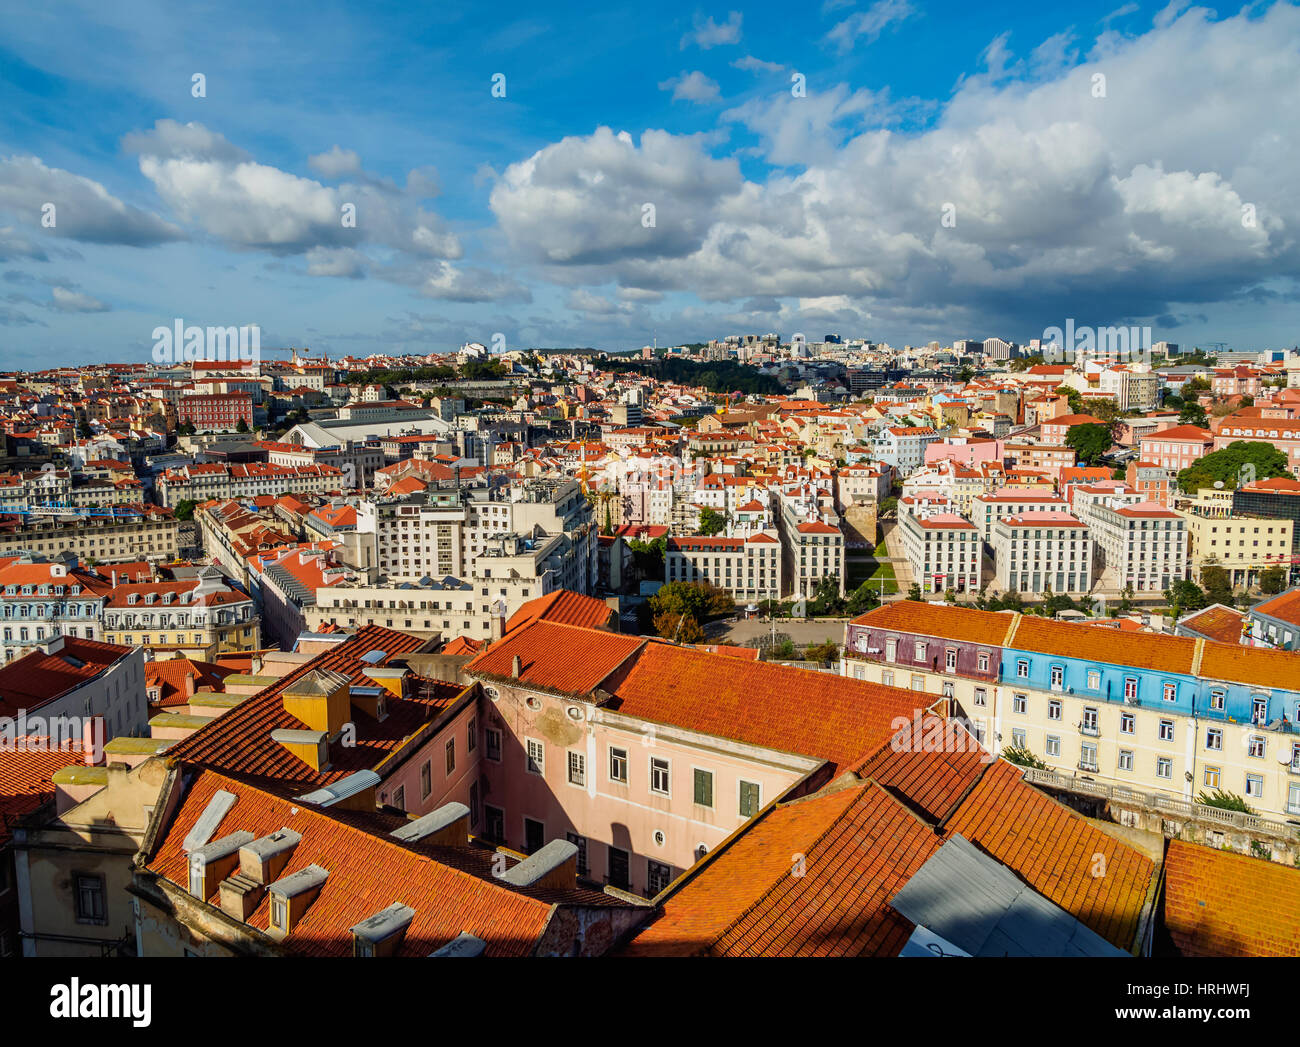 Cityscape viewed from the Sao Jorge Castle, Lisbon, Portugal - Stock Image